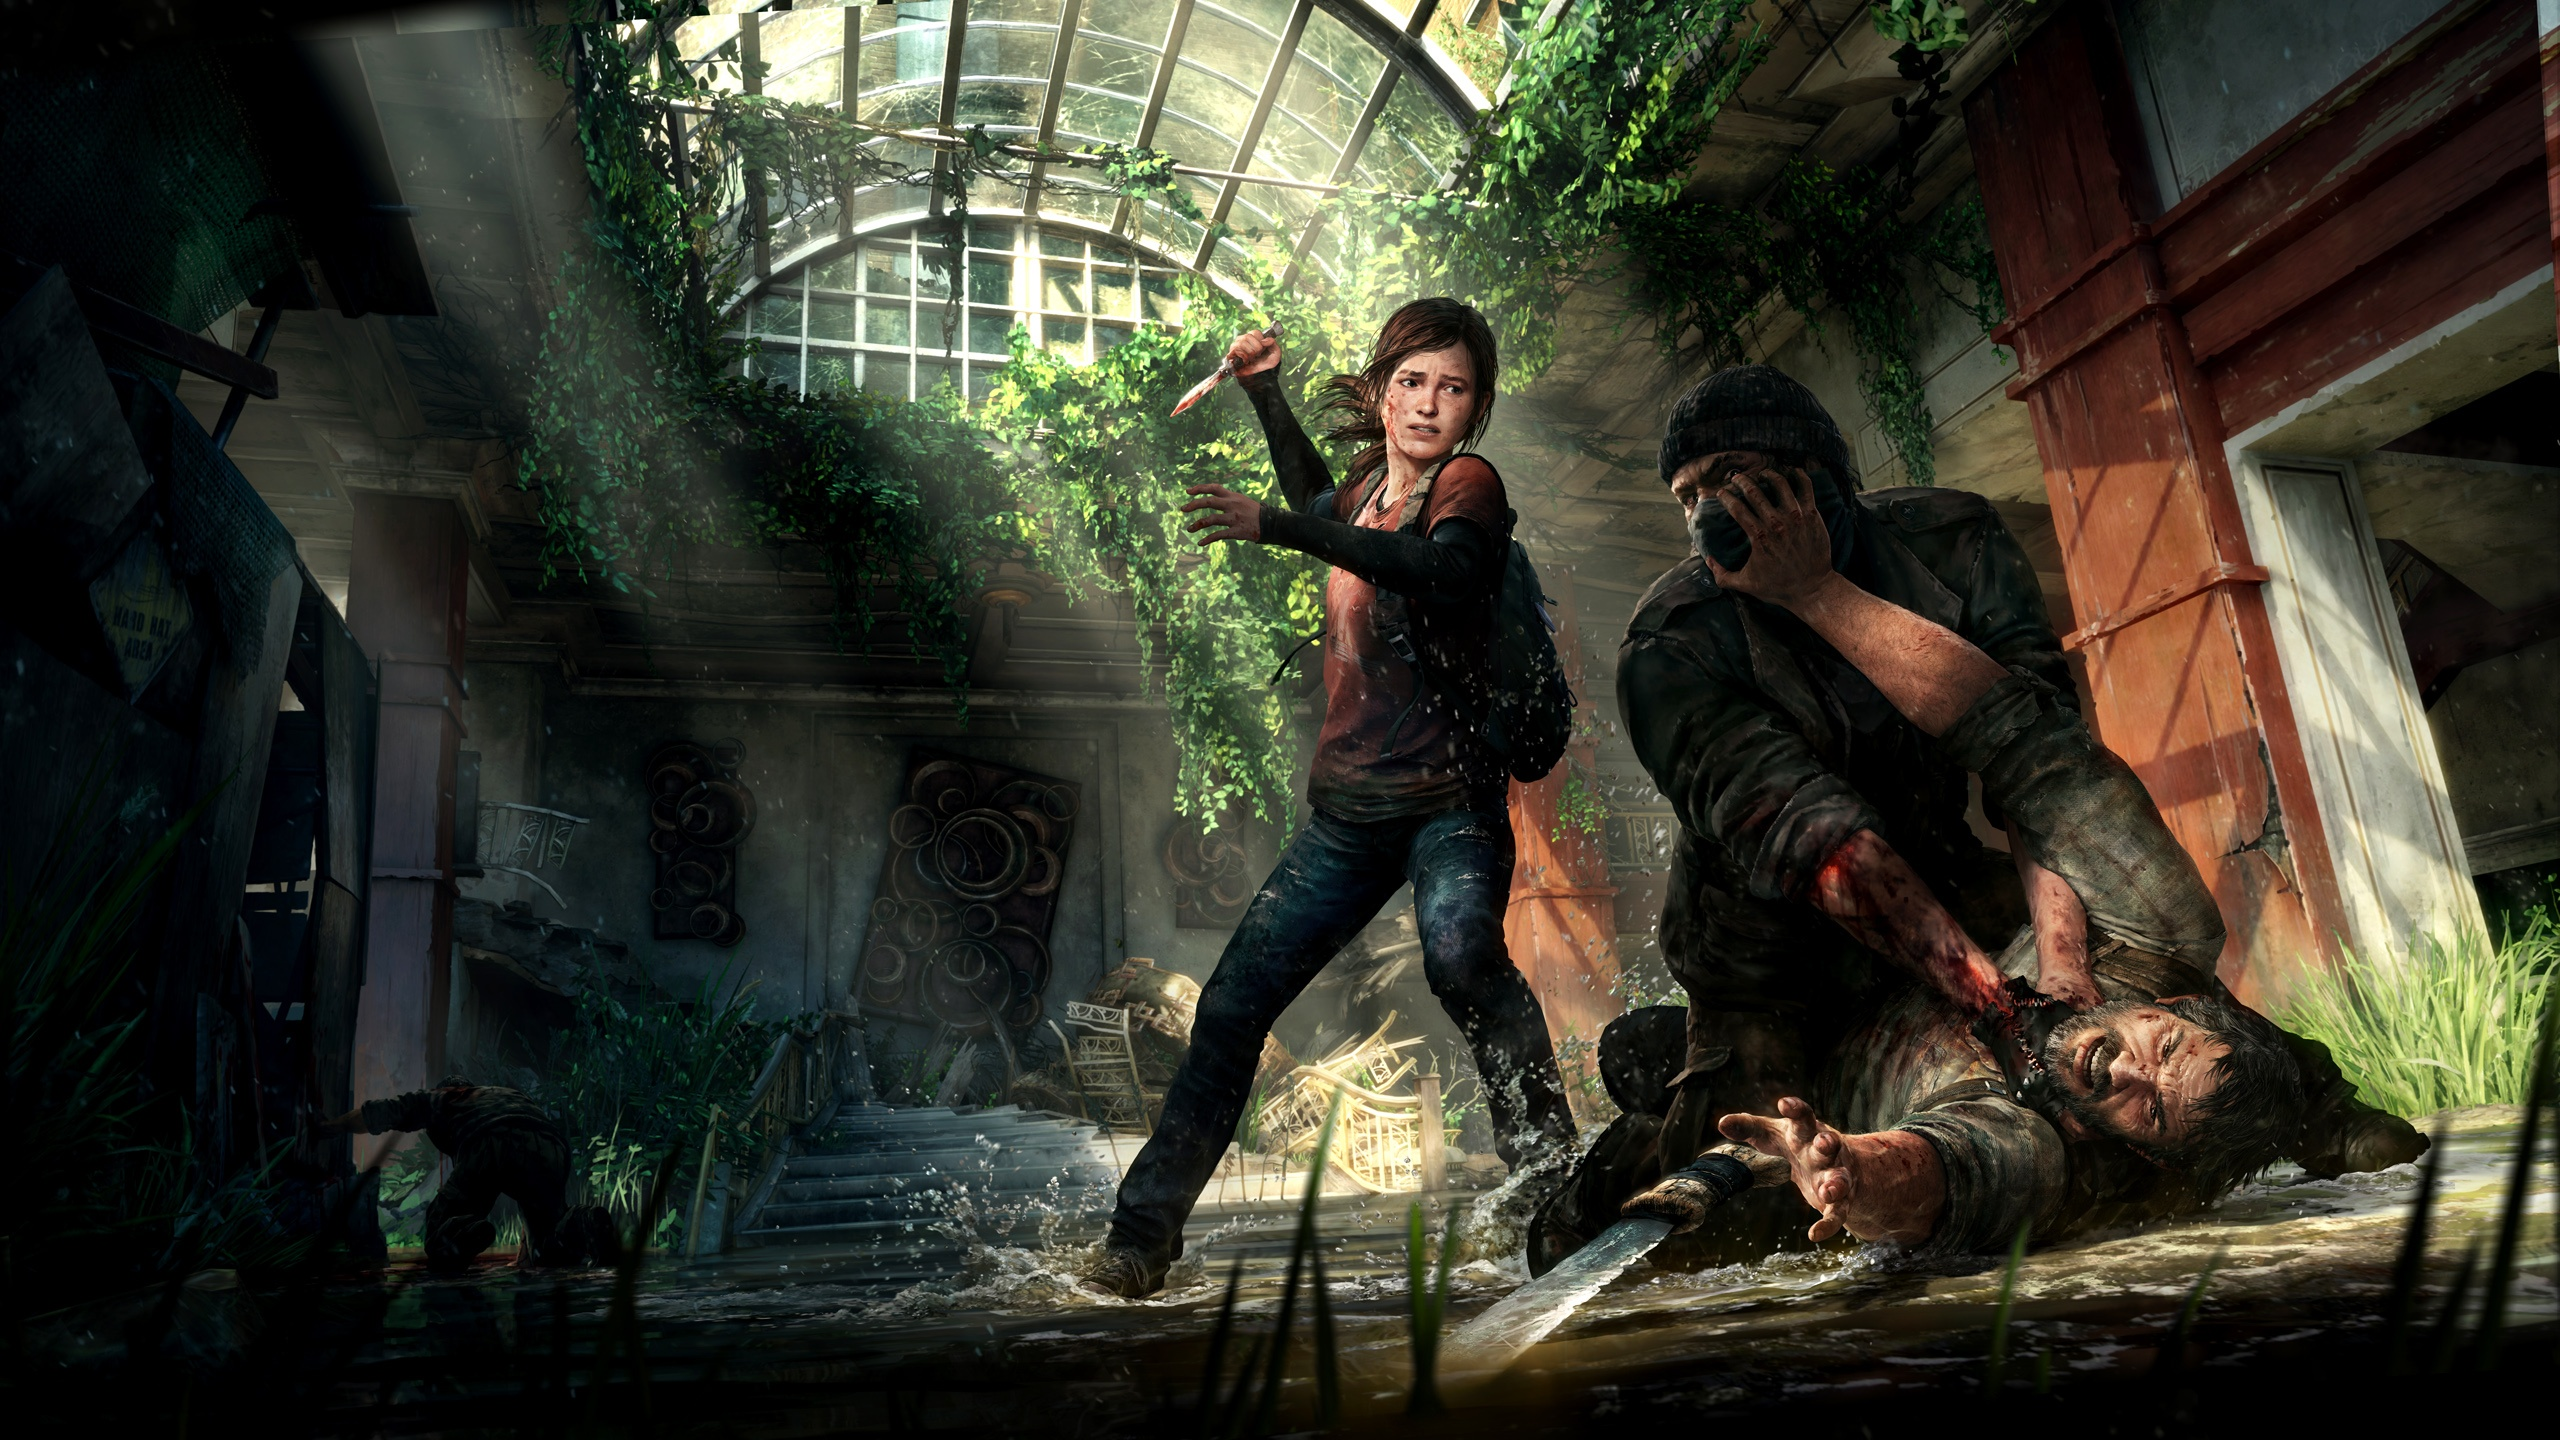 the last of us game wallpaper background 51911